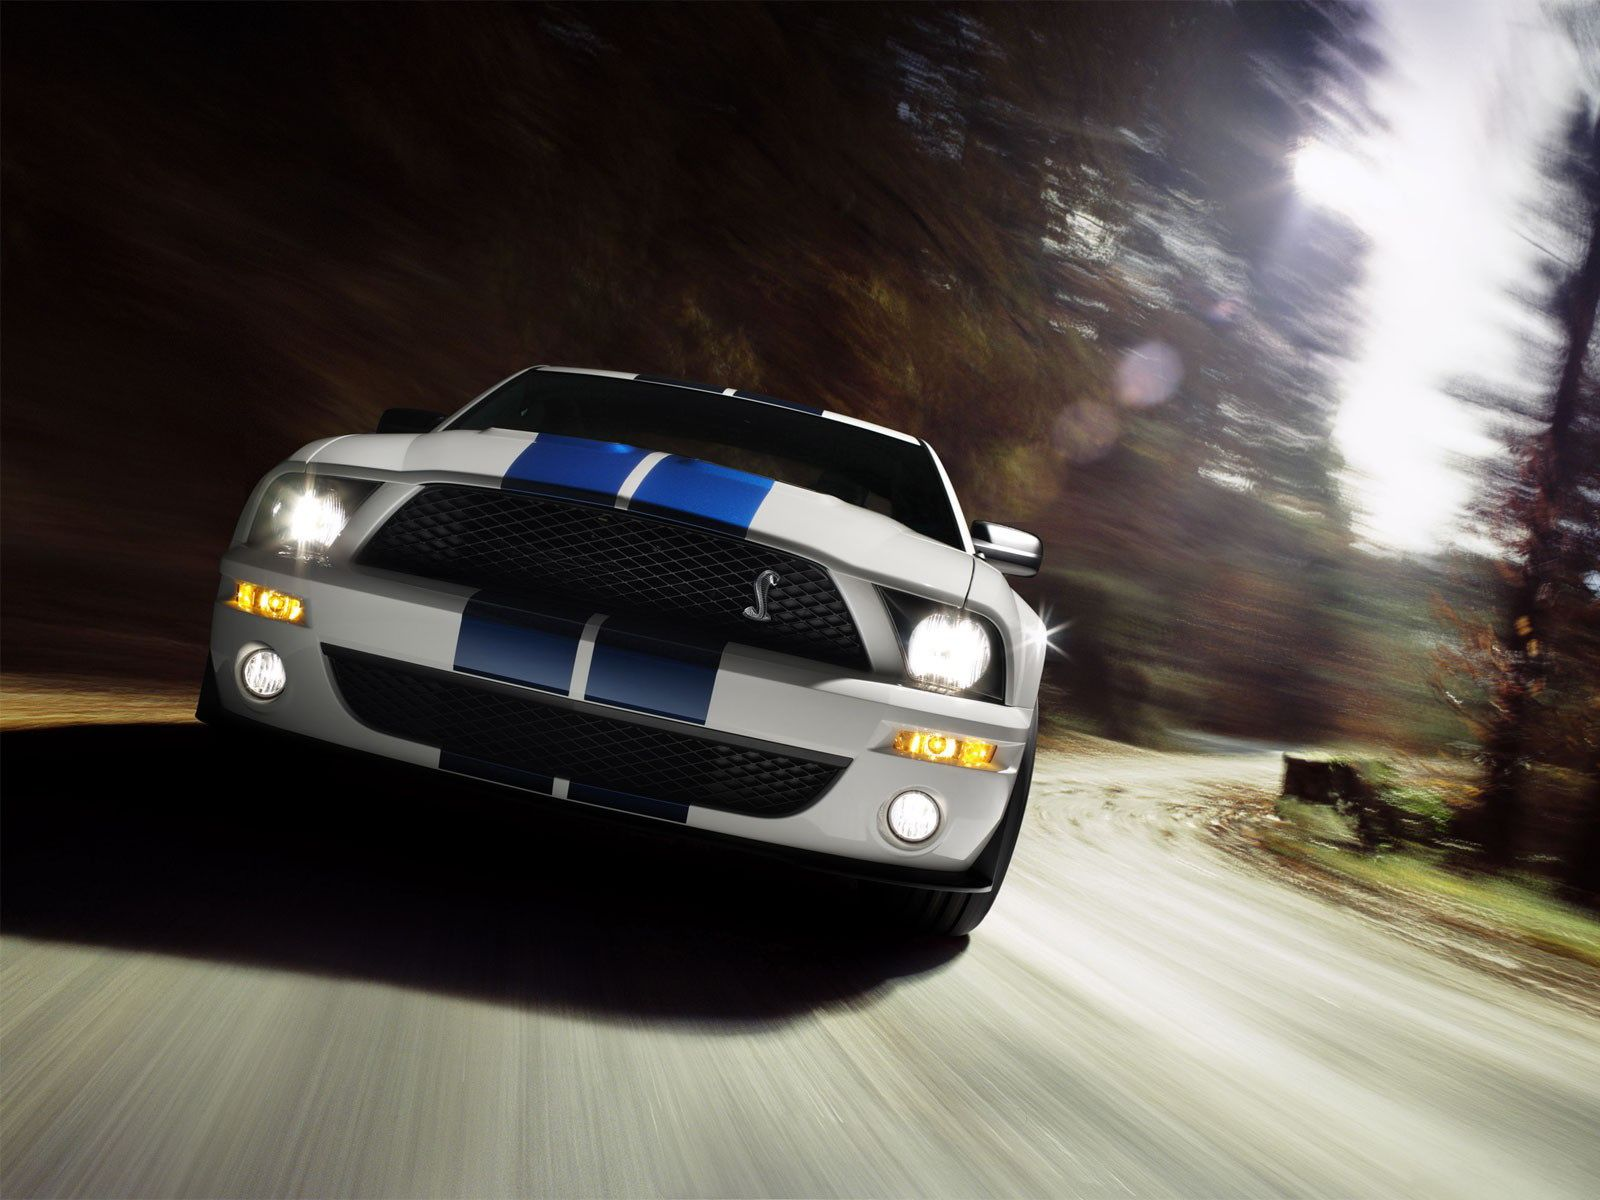 Red Ford Mustang Wallpapers HD Quality Red Ford Mustang